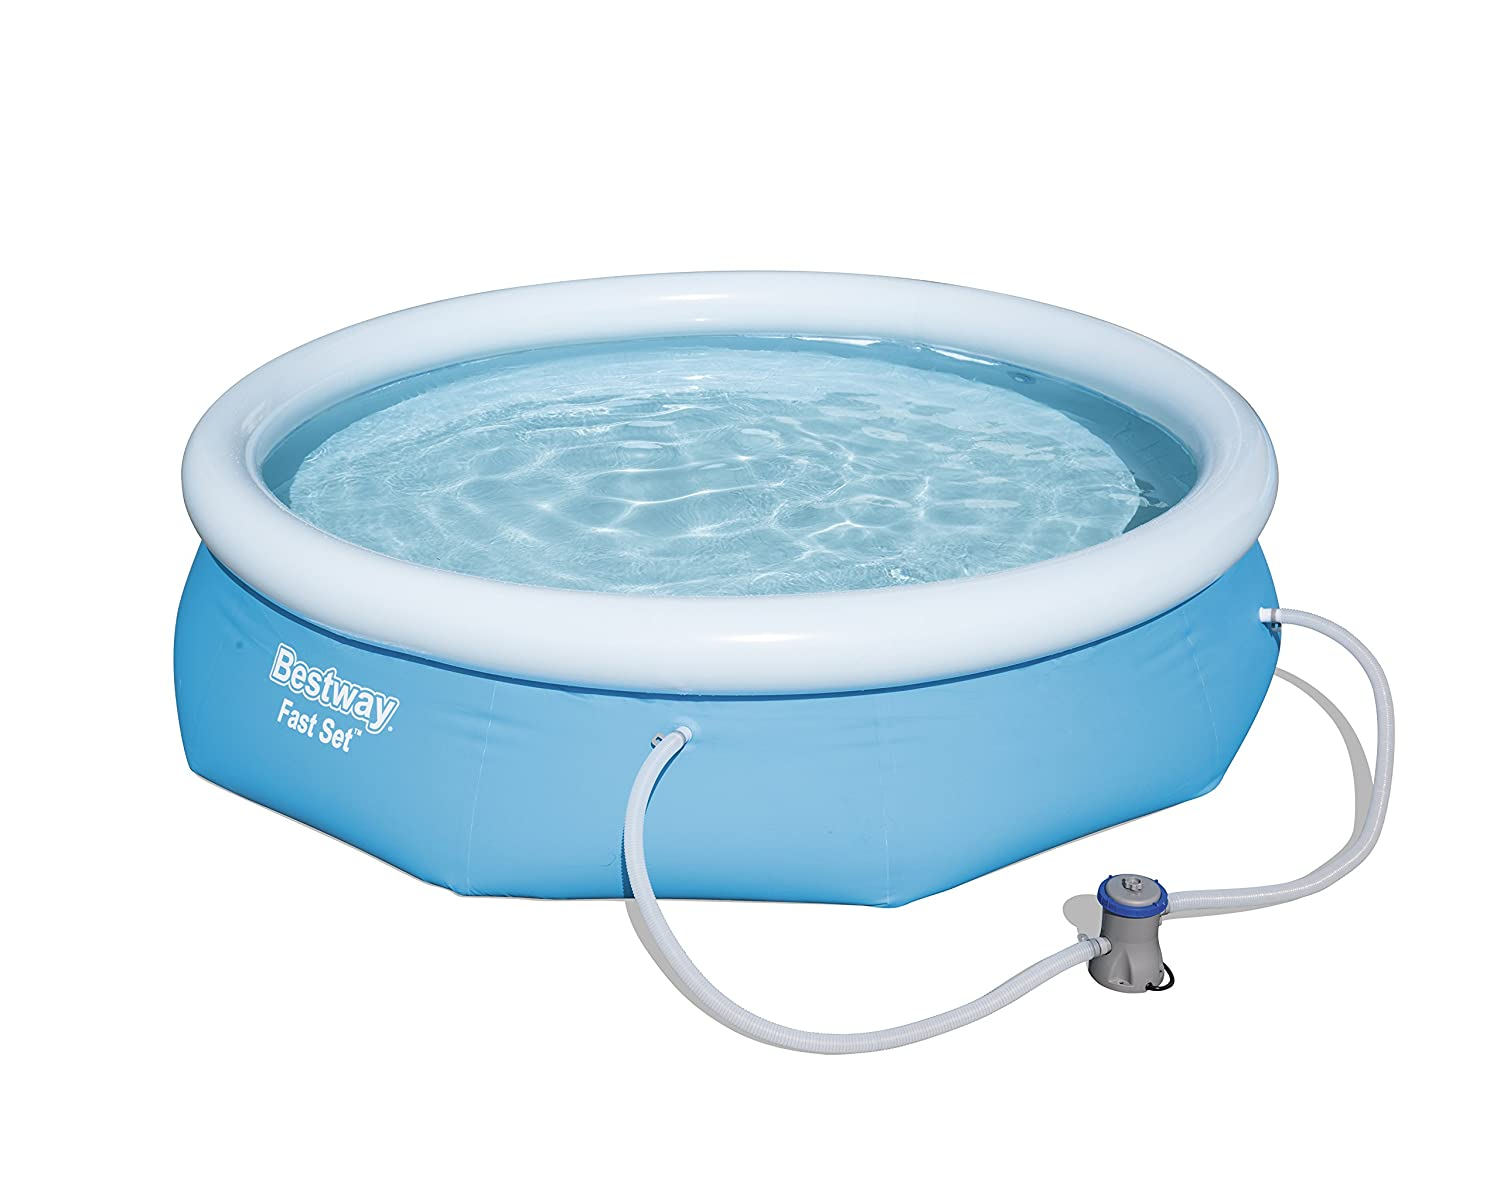 Bestway Inflatable Fast Set Swimming Pool with Pump, 10 feet 57270